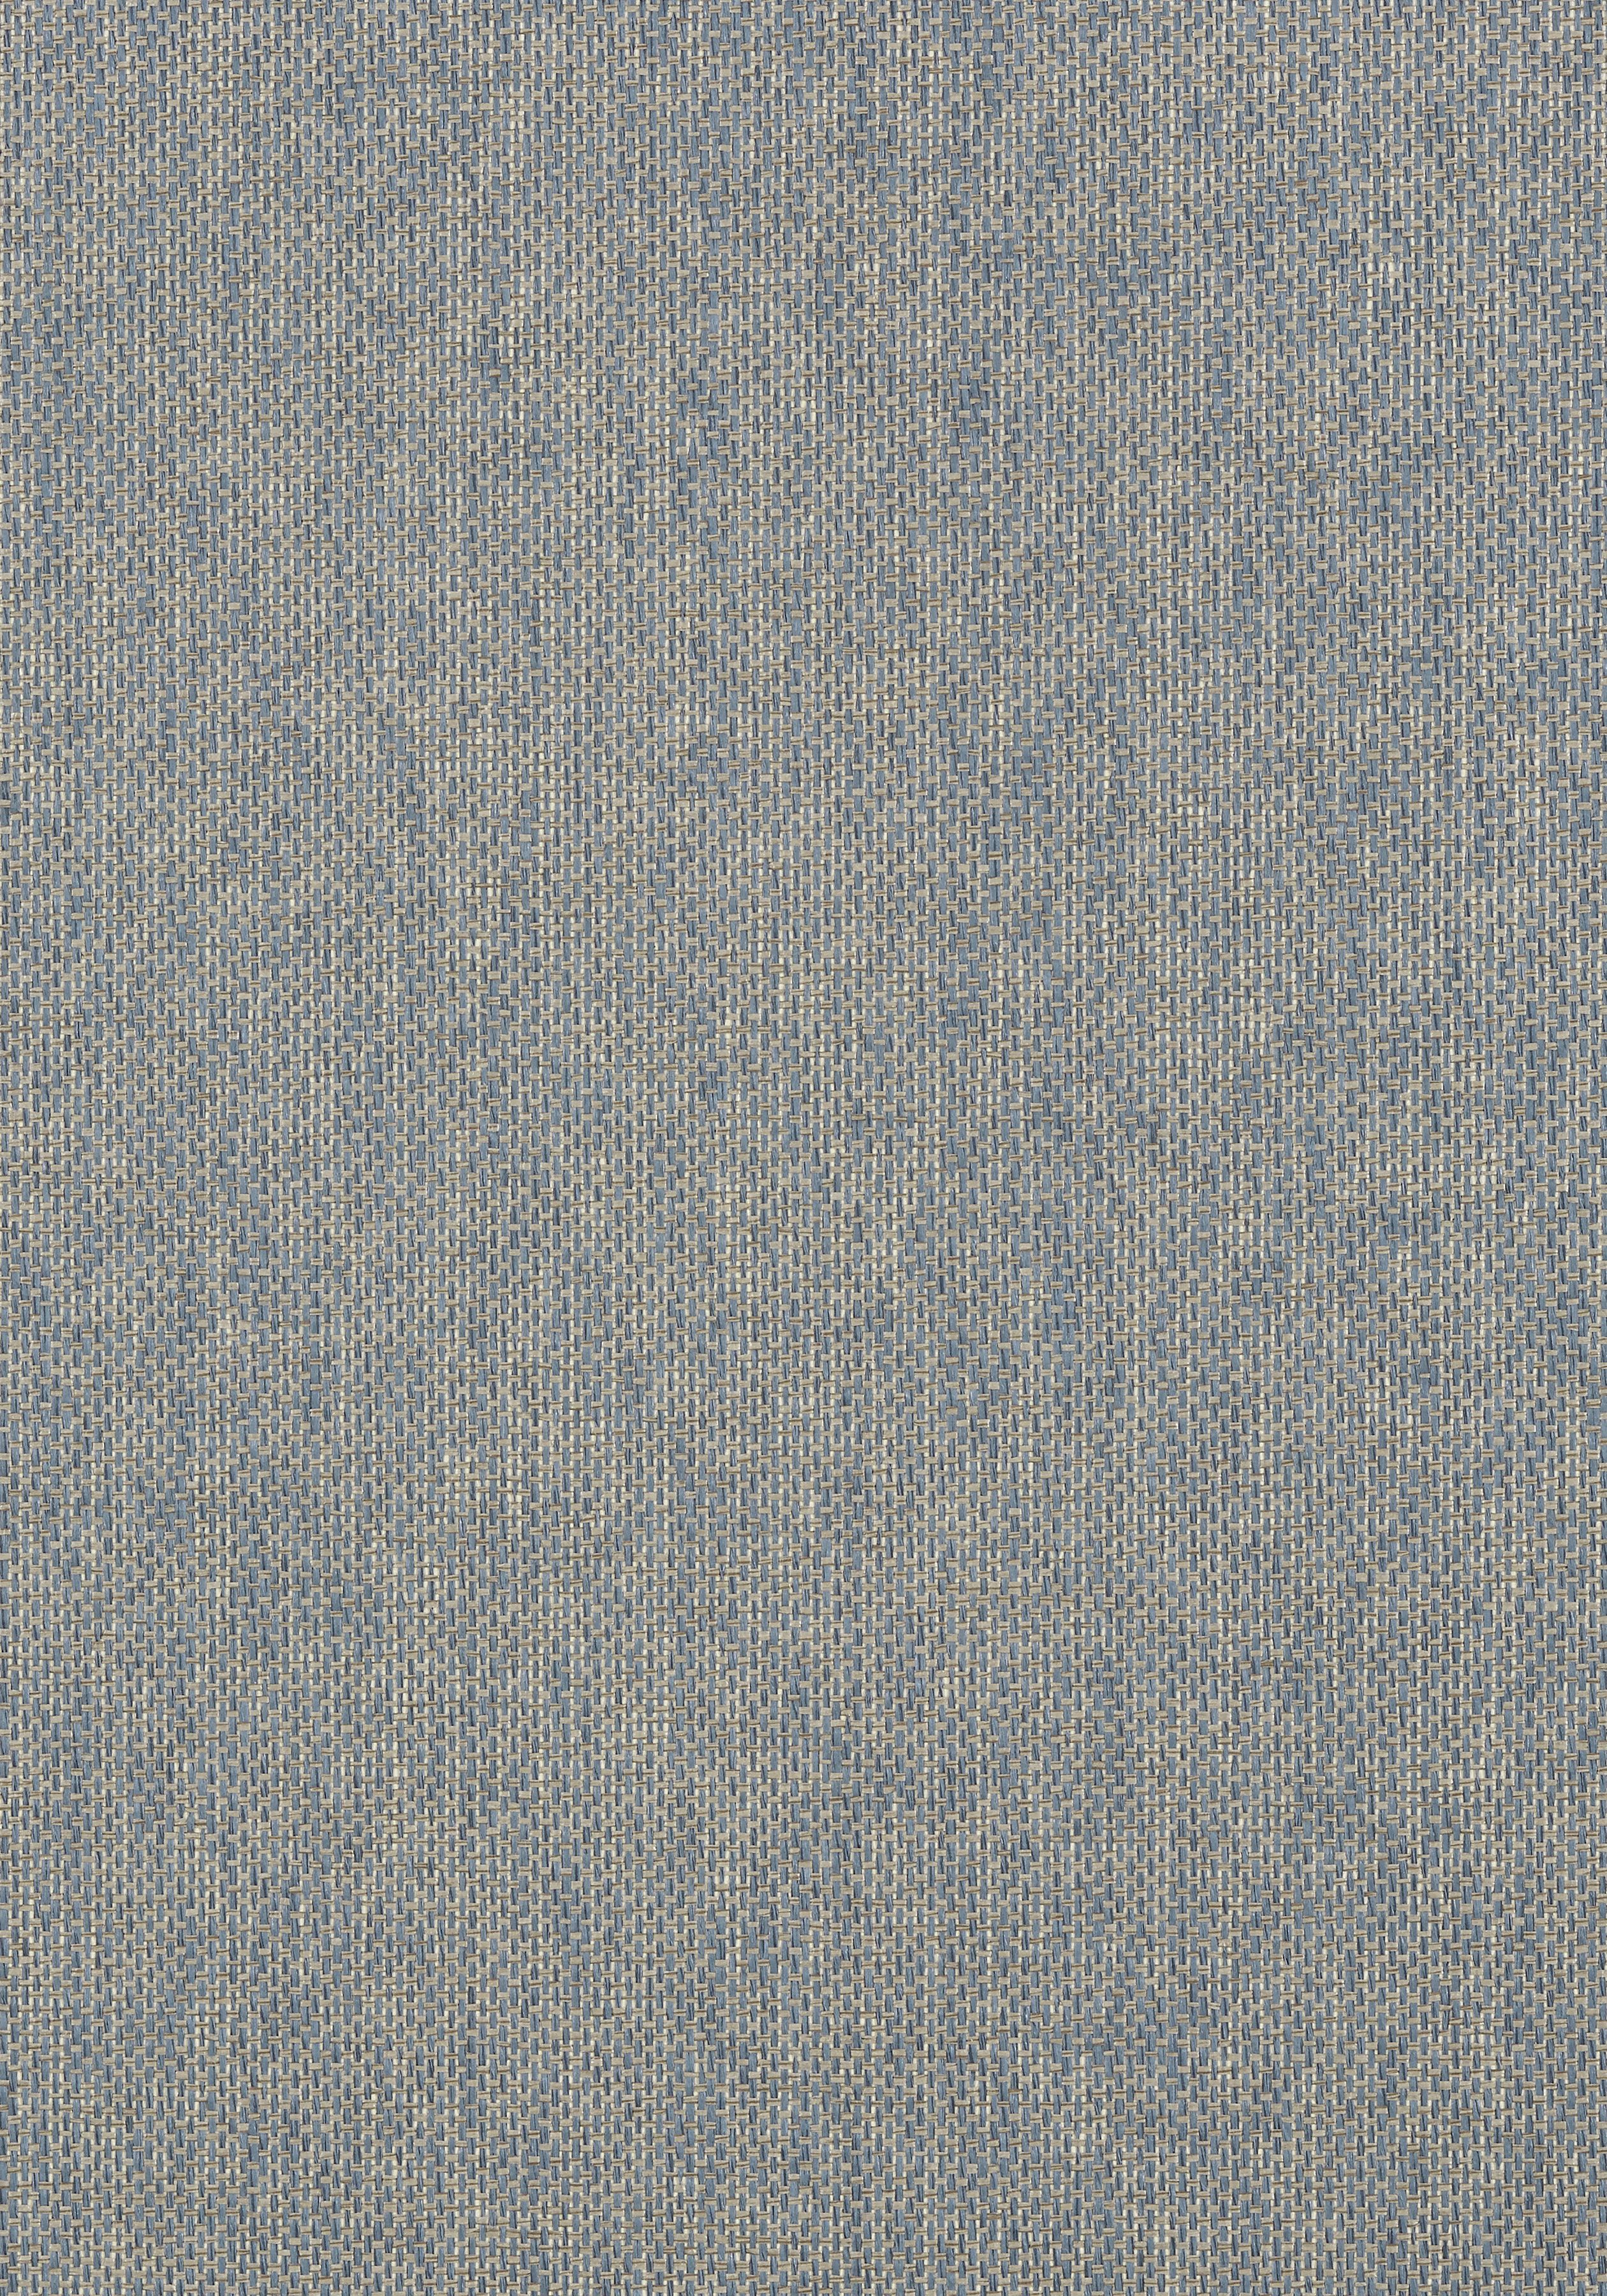 Adriatic Navy And Taupe T41137 Collection Grasscloth Resource 3